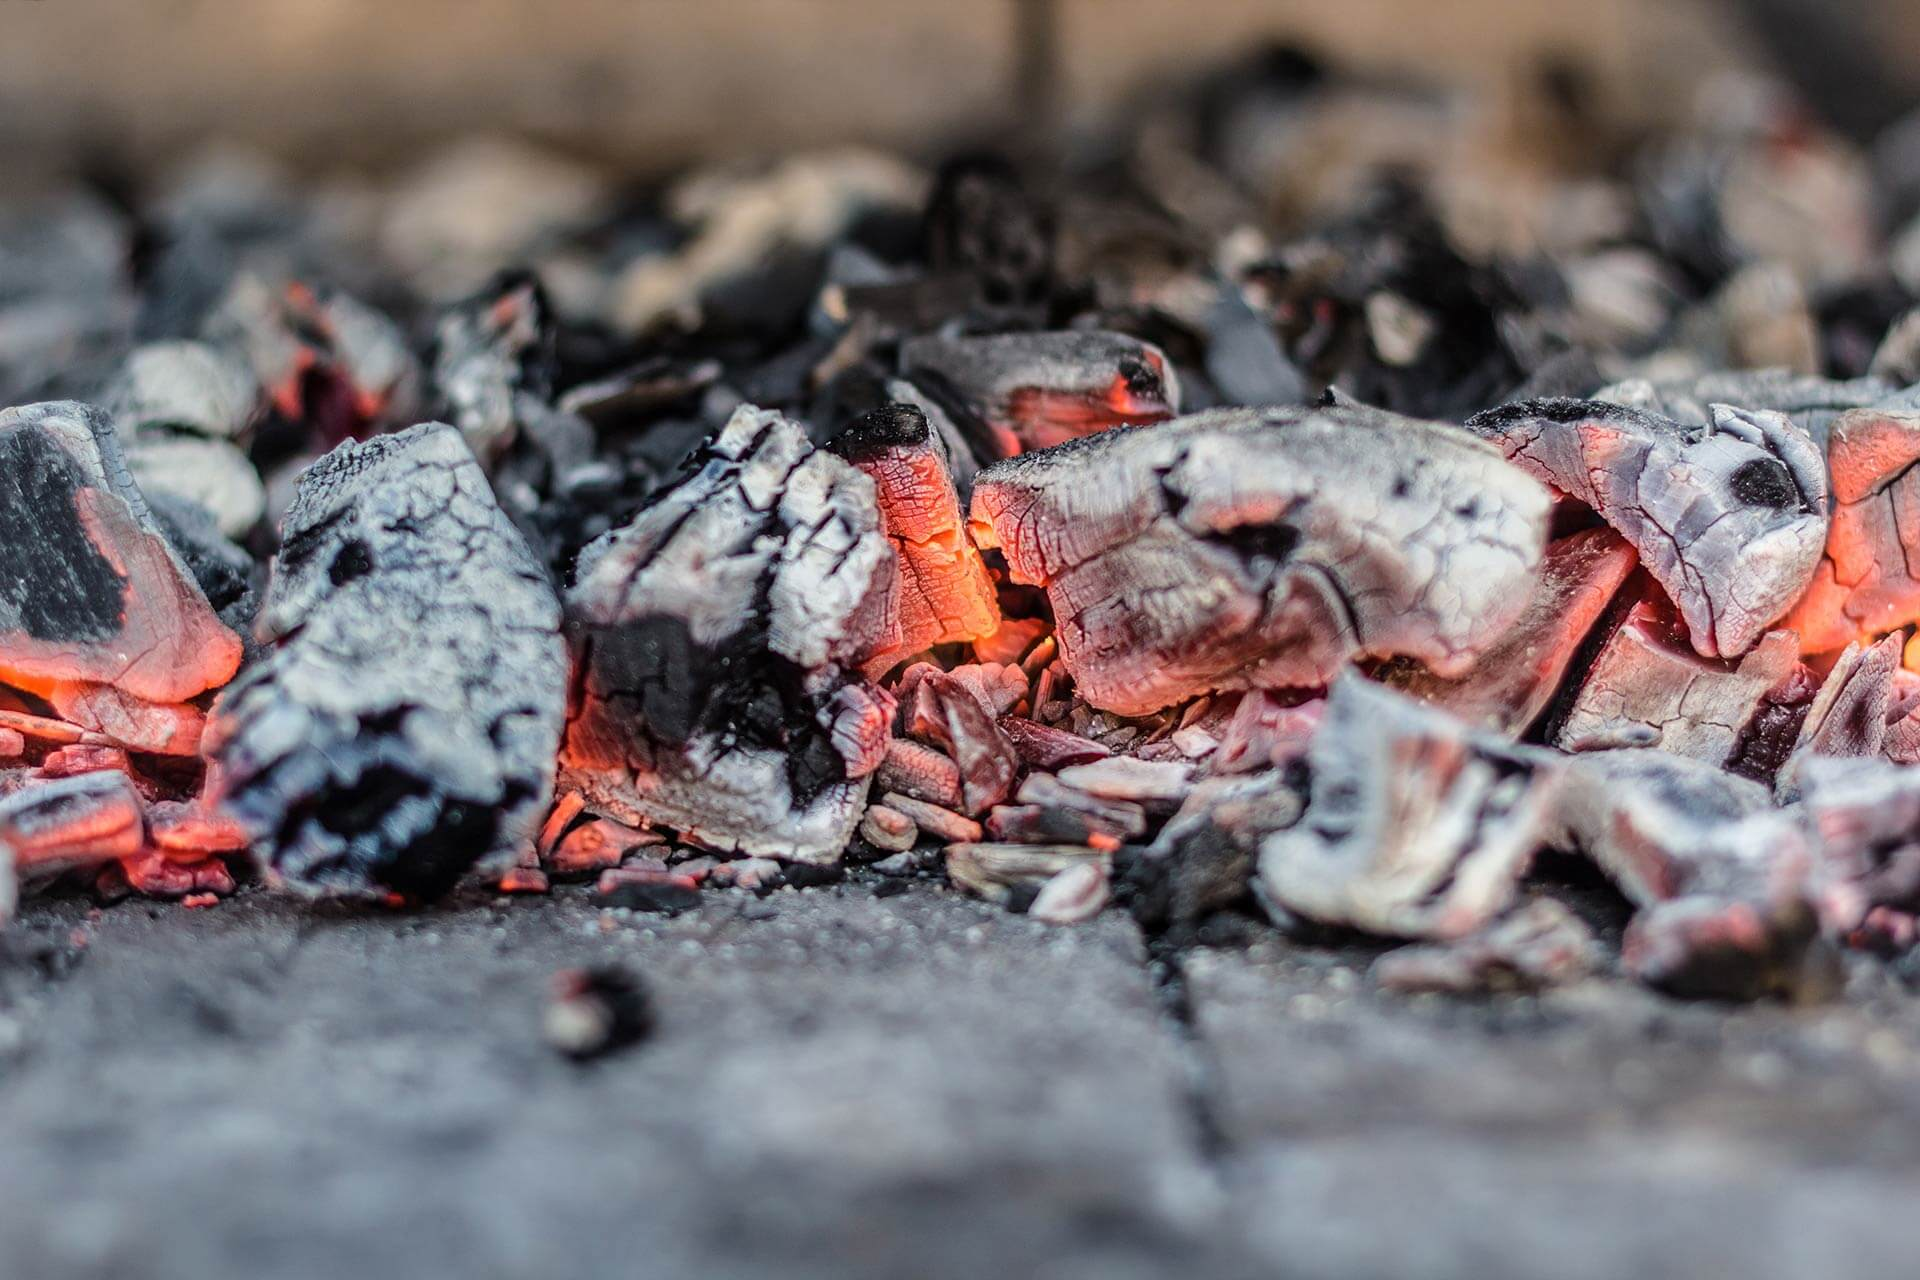 hot coals from putting out fire in a fire pit